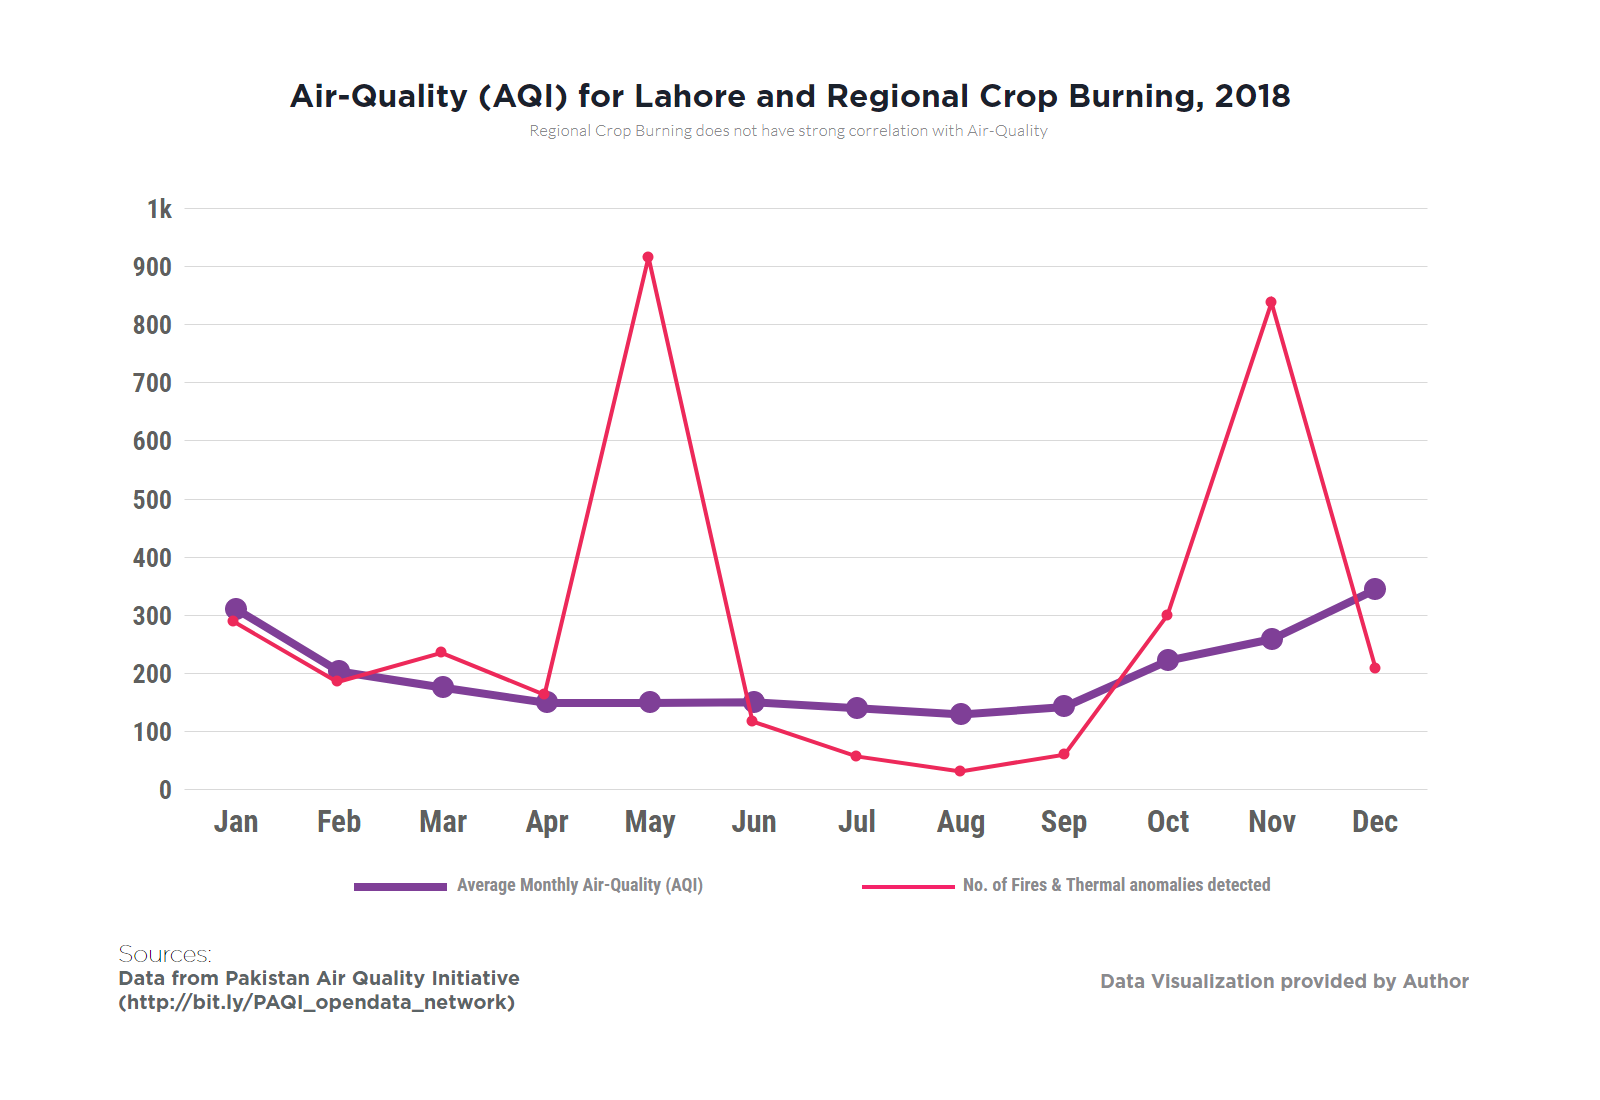 Air quality index for Lahore and regional crop burning in 2018.